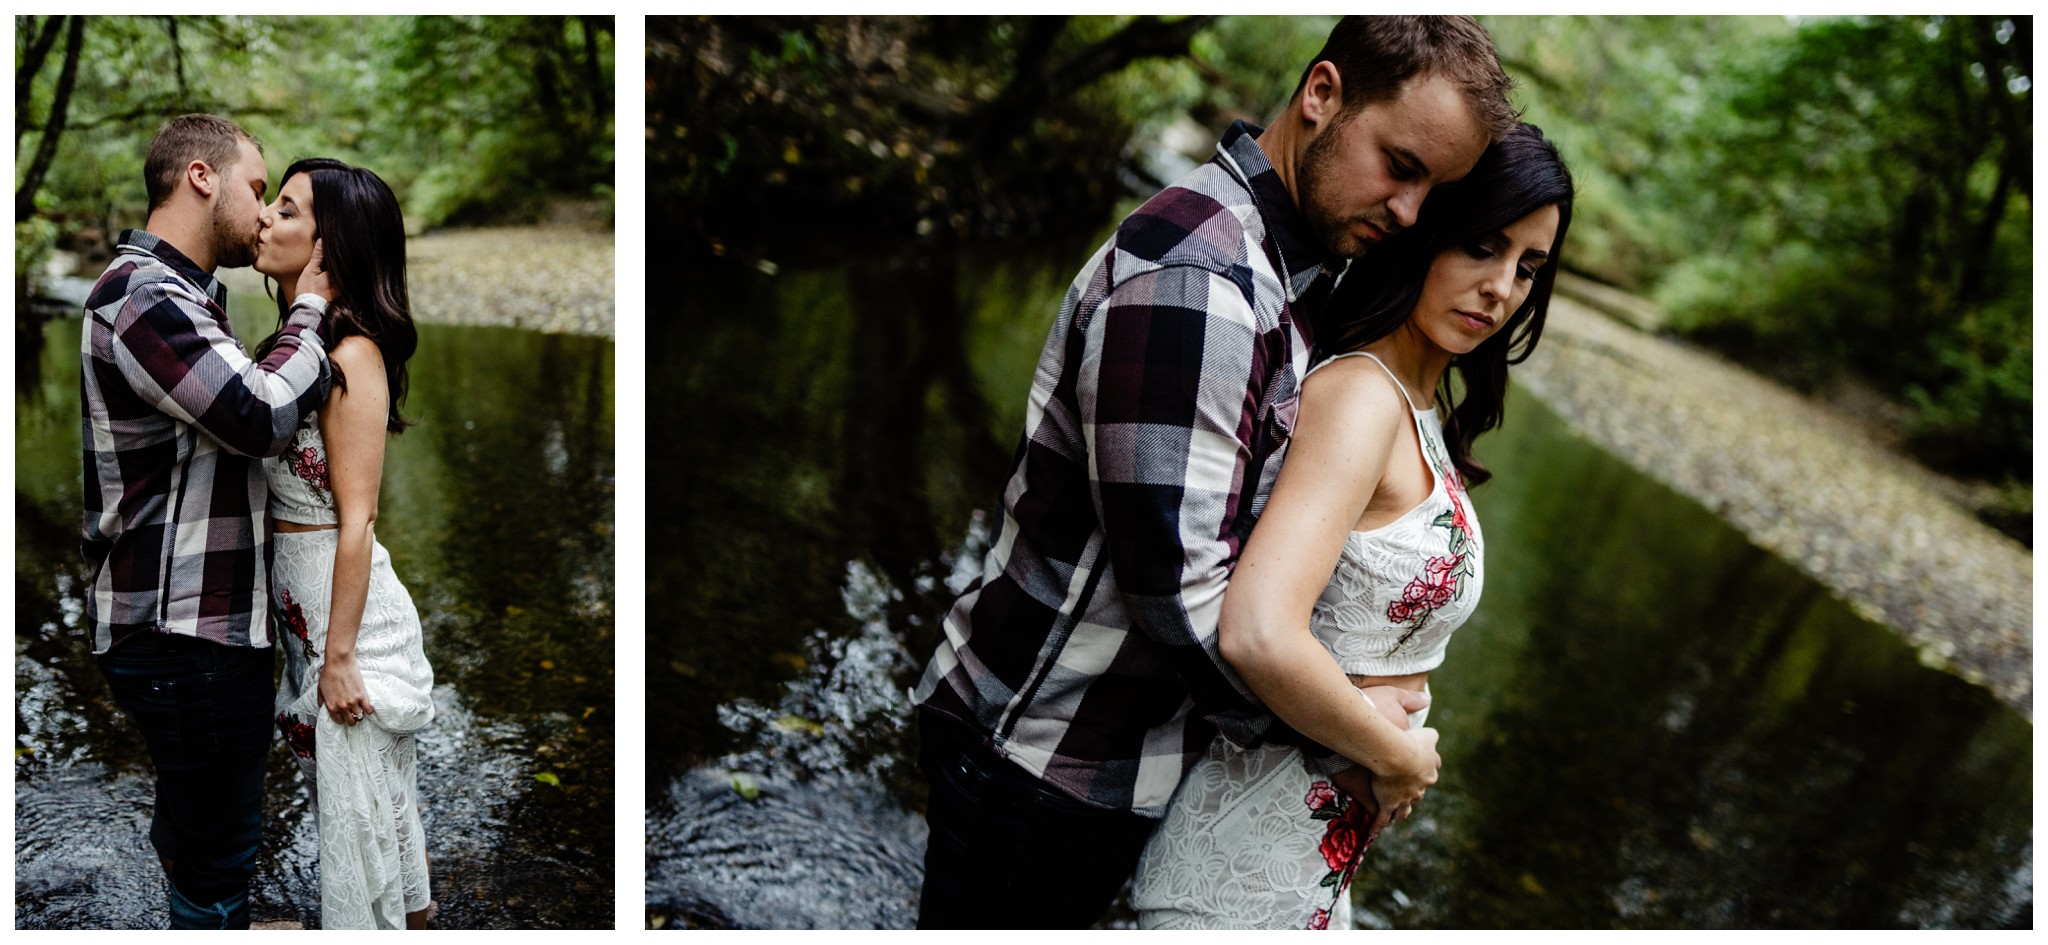 Williams Park Aldergrove Engagement Photographer Moody Fall Couple River Water Romantic Pose Yellow Leaves White Dress Dark_0016.jpg